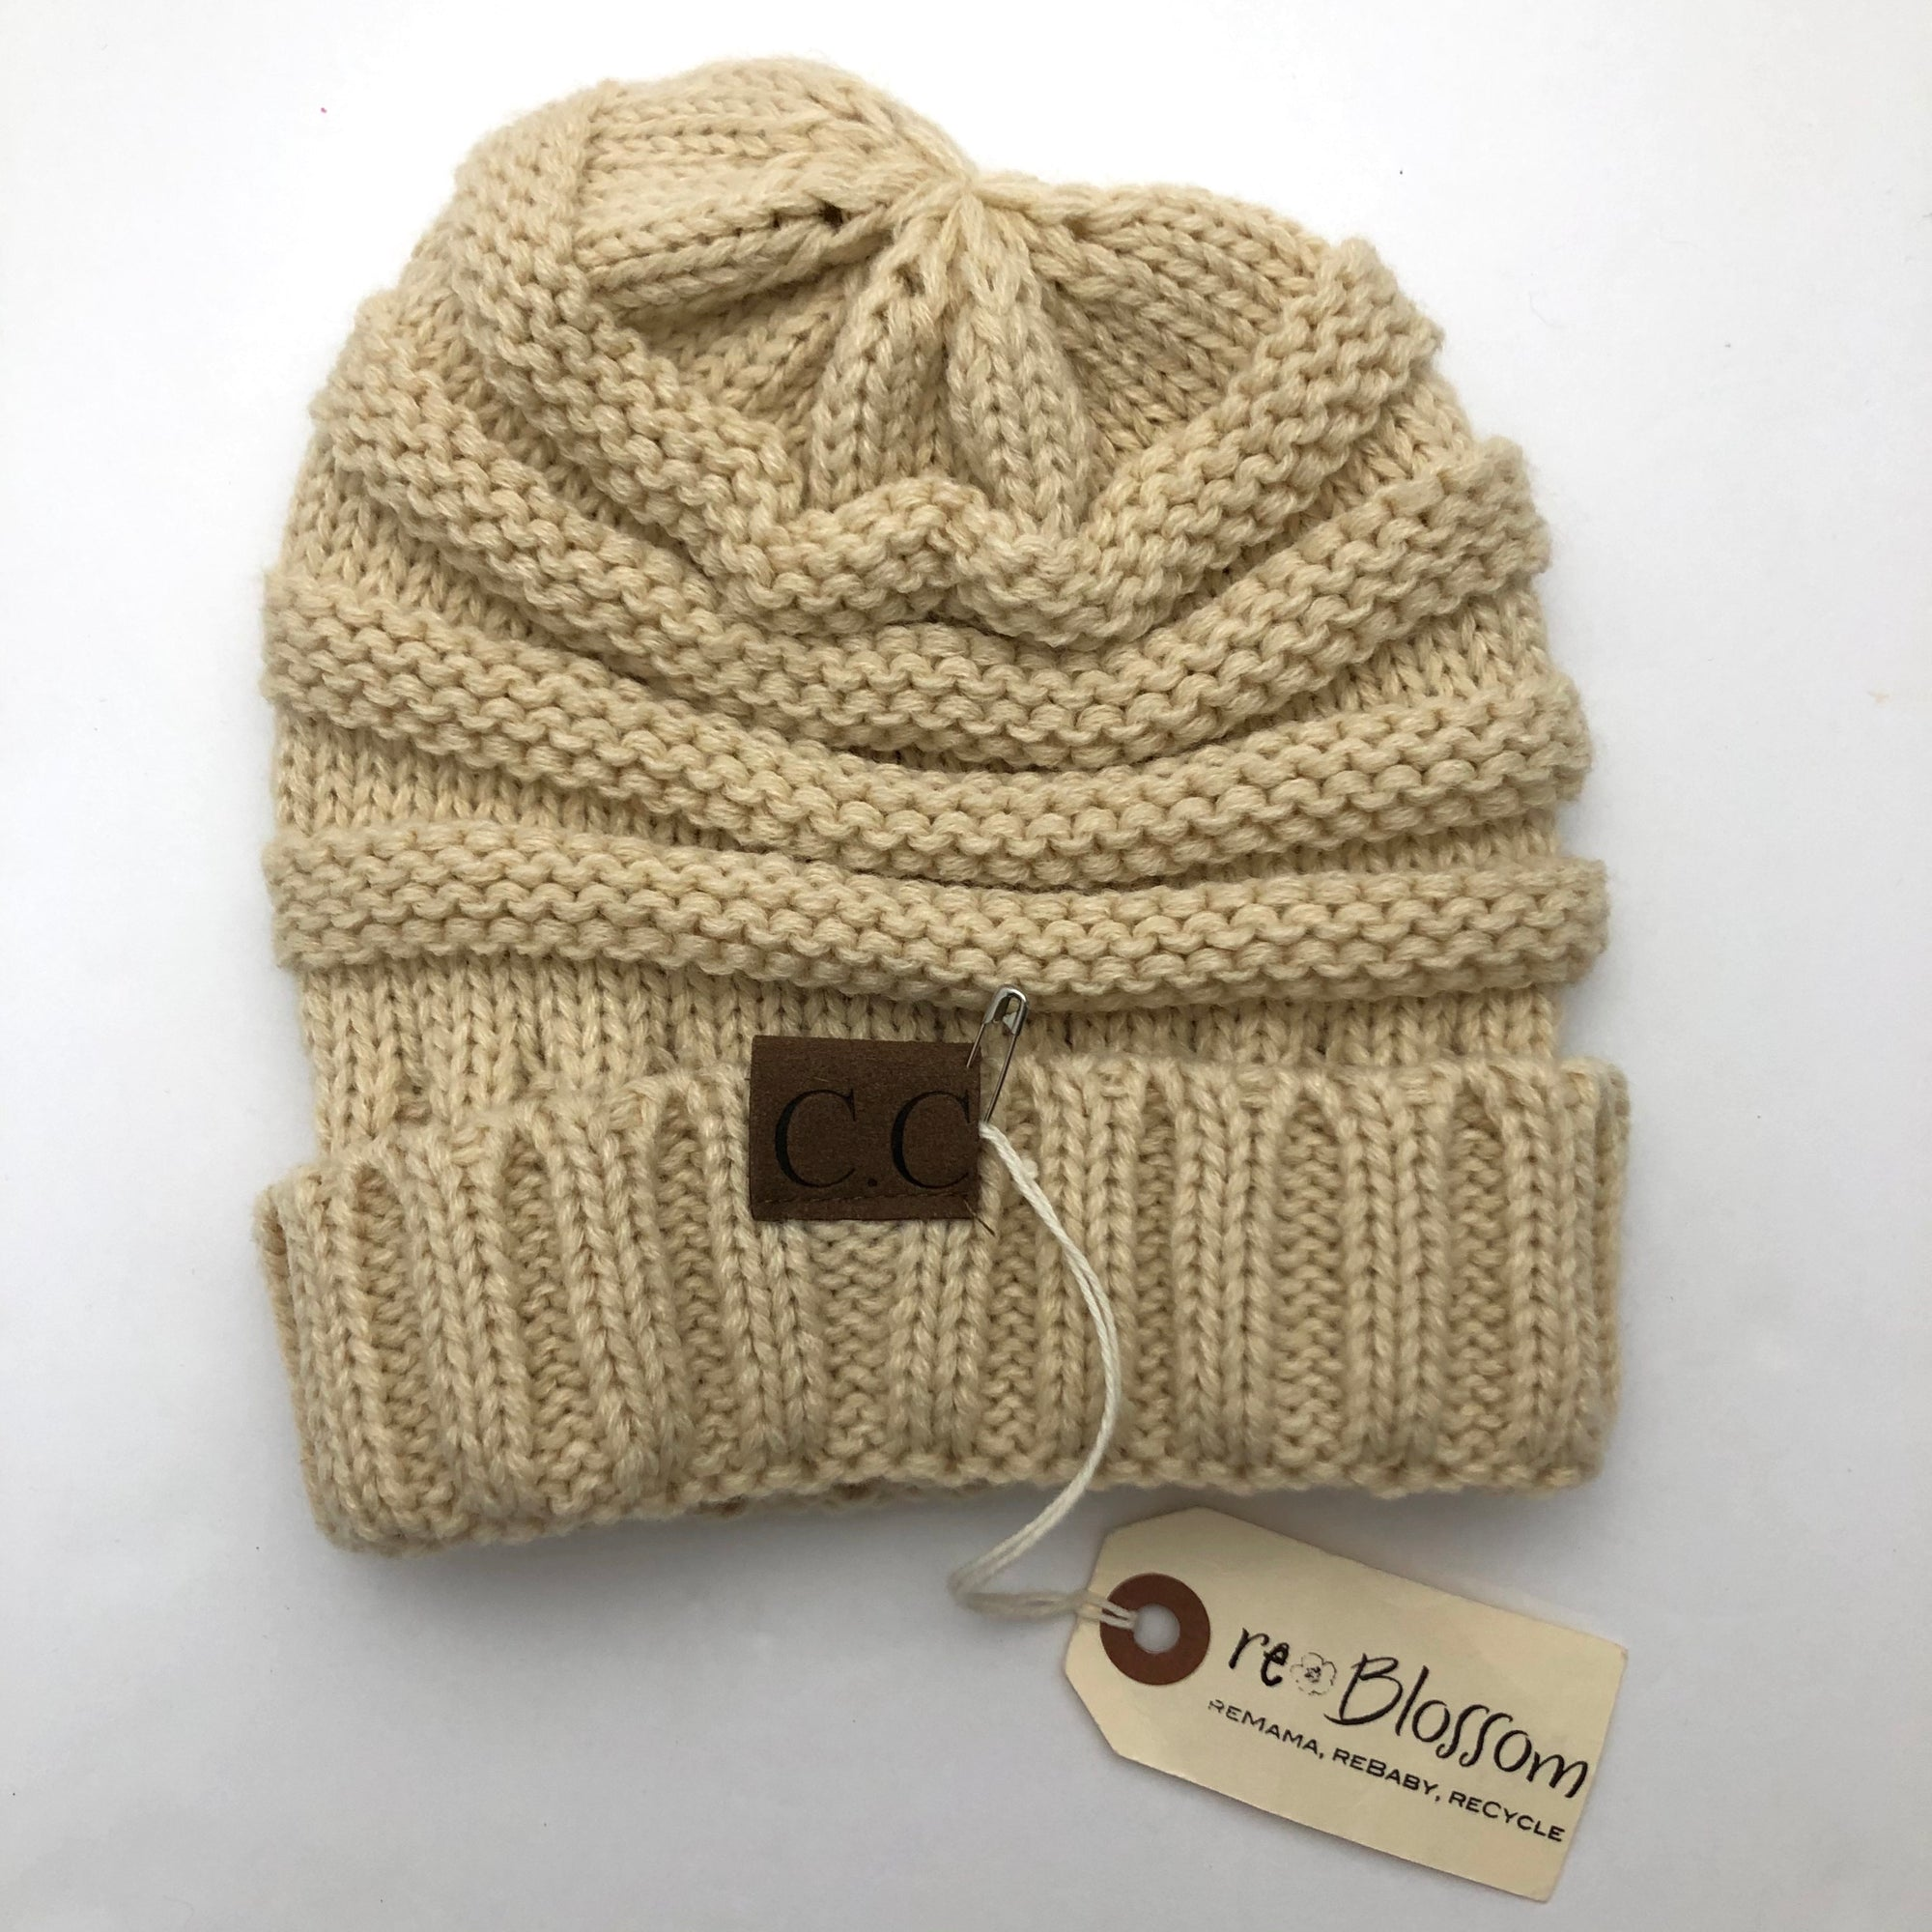 Resale 2-7y CC Crocheted Cream Beanie